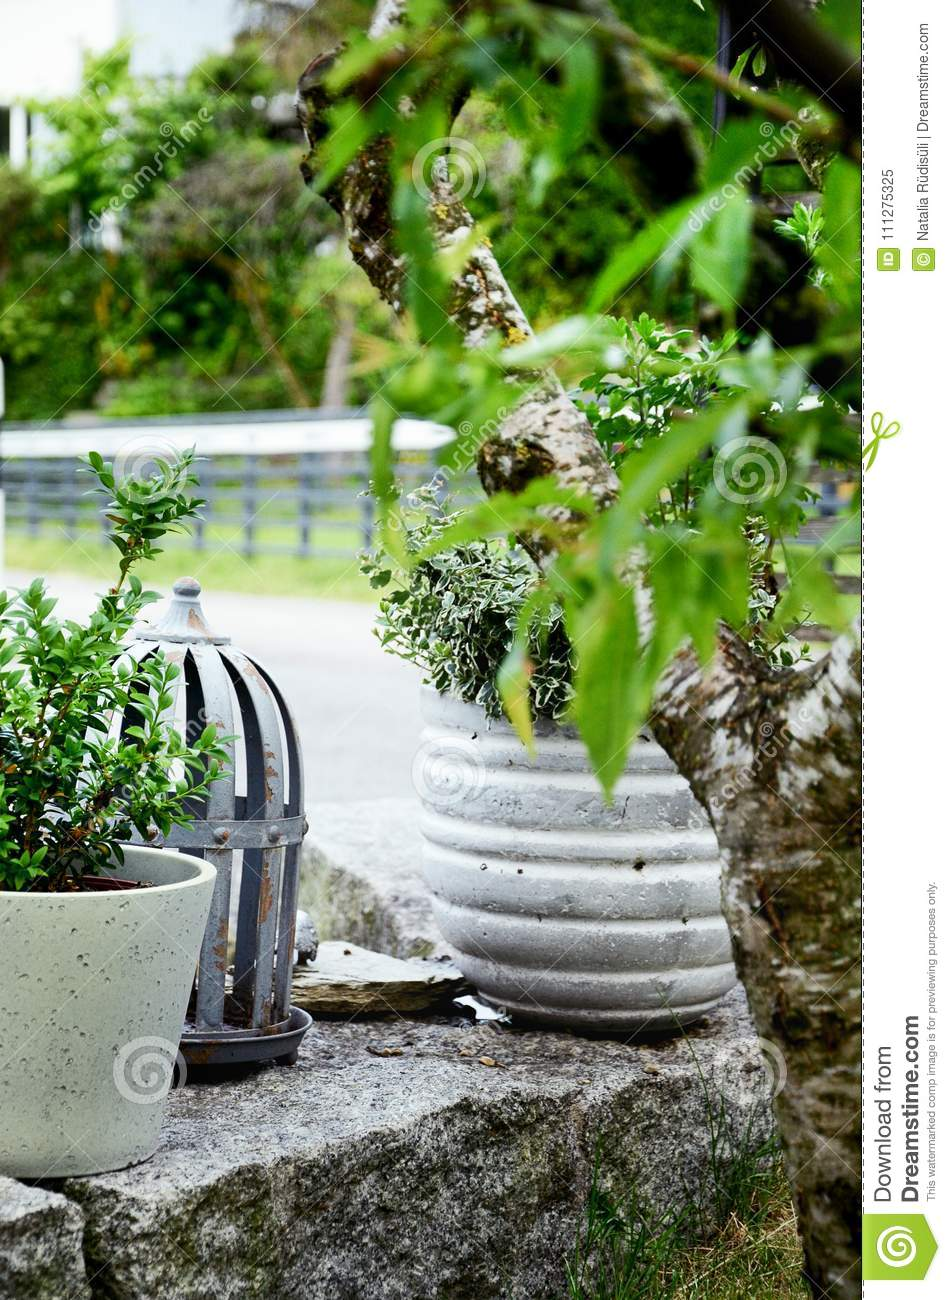 Stone Garden Arrangement With Green And White Plants And Concrete Plant  Pots. Vertical, Close